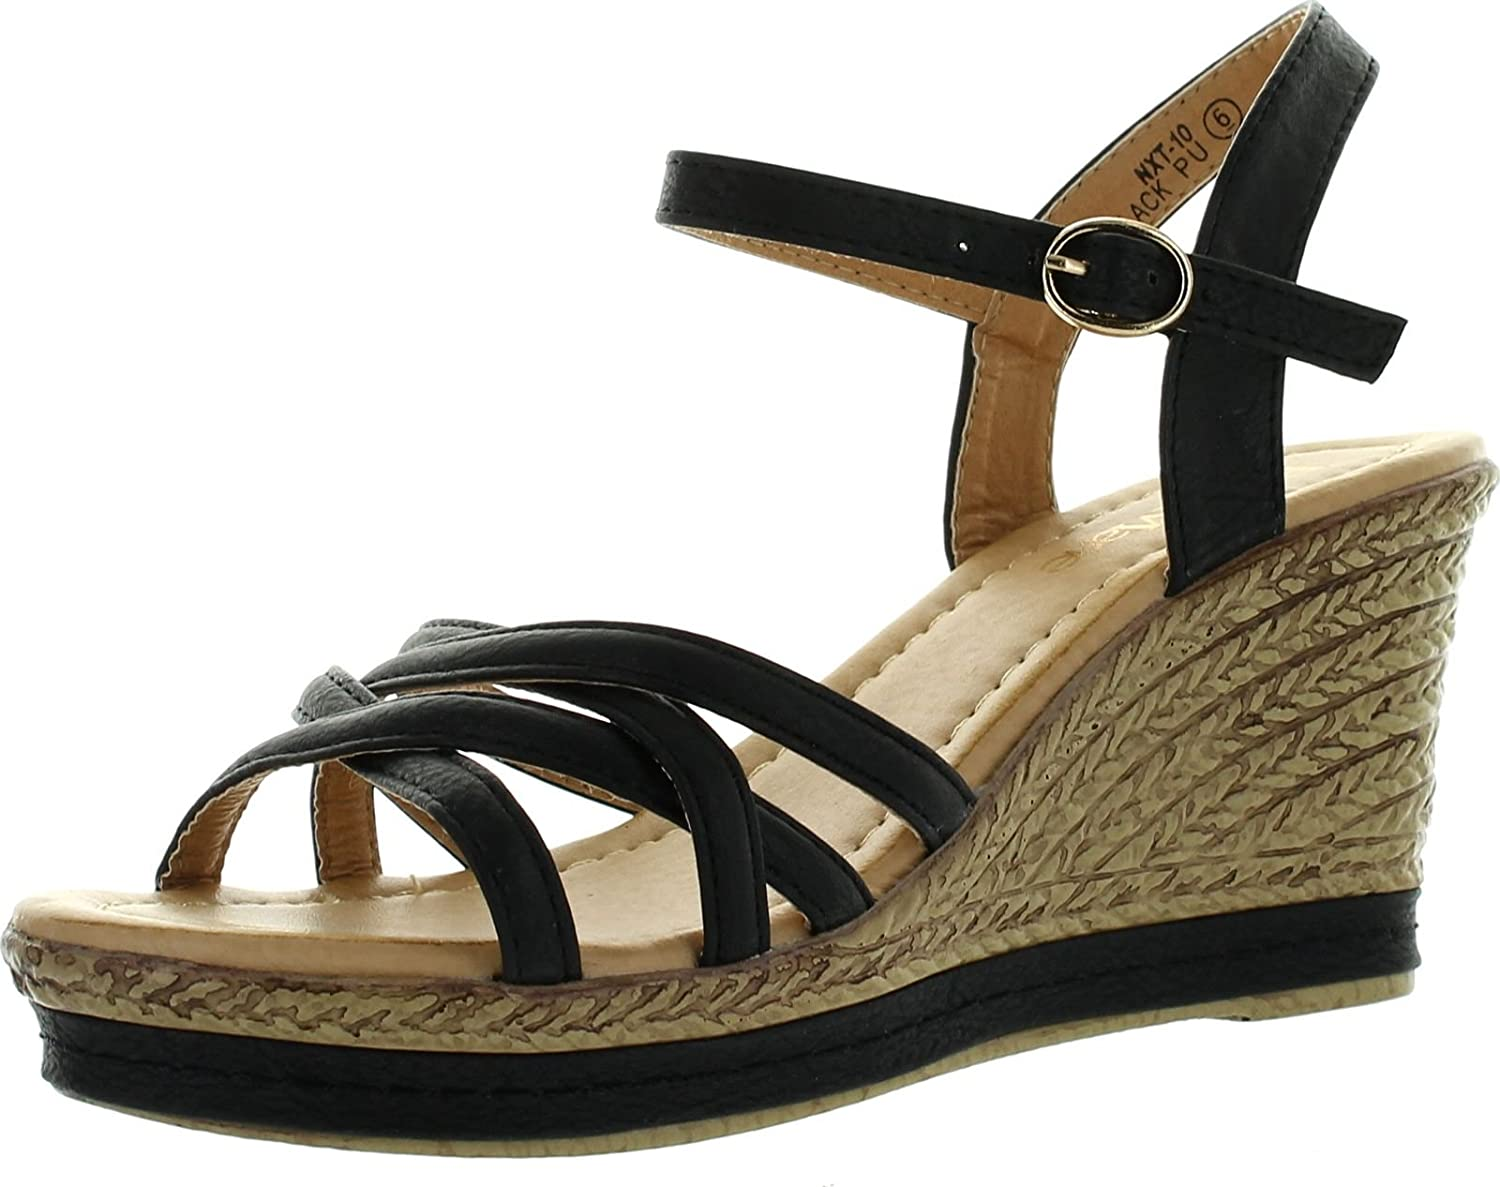 Bellamarie Nxt-10 Women Comfy Ankle Strappy Espadrille Wedge Platform Sandal